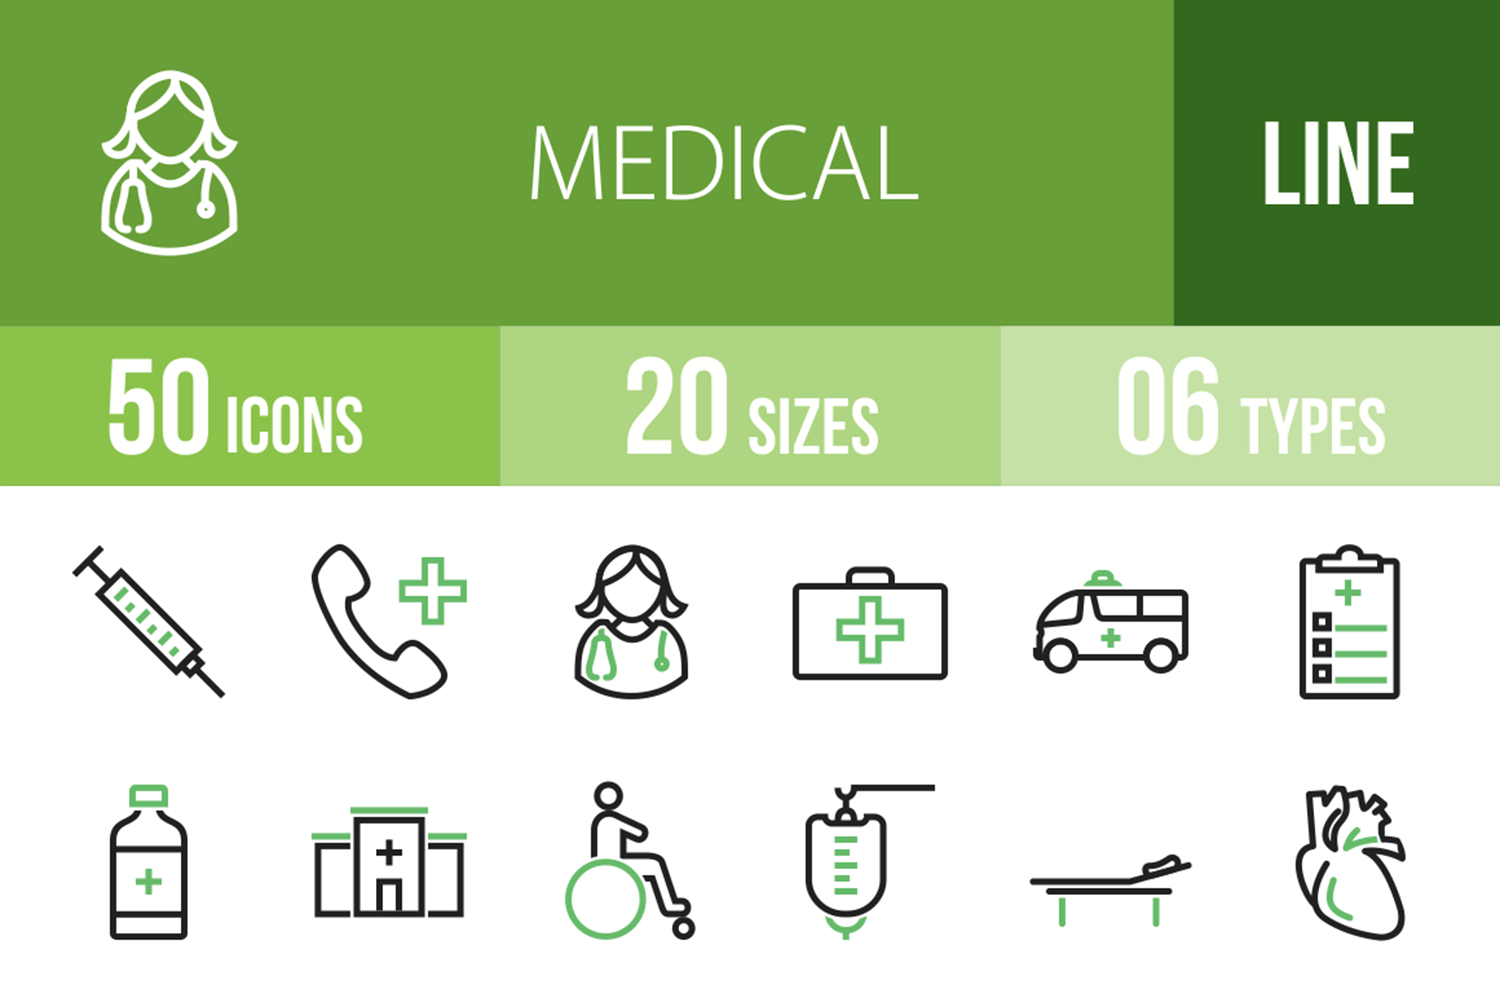 50 Medical Line Green & Black Icons example image 1